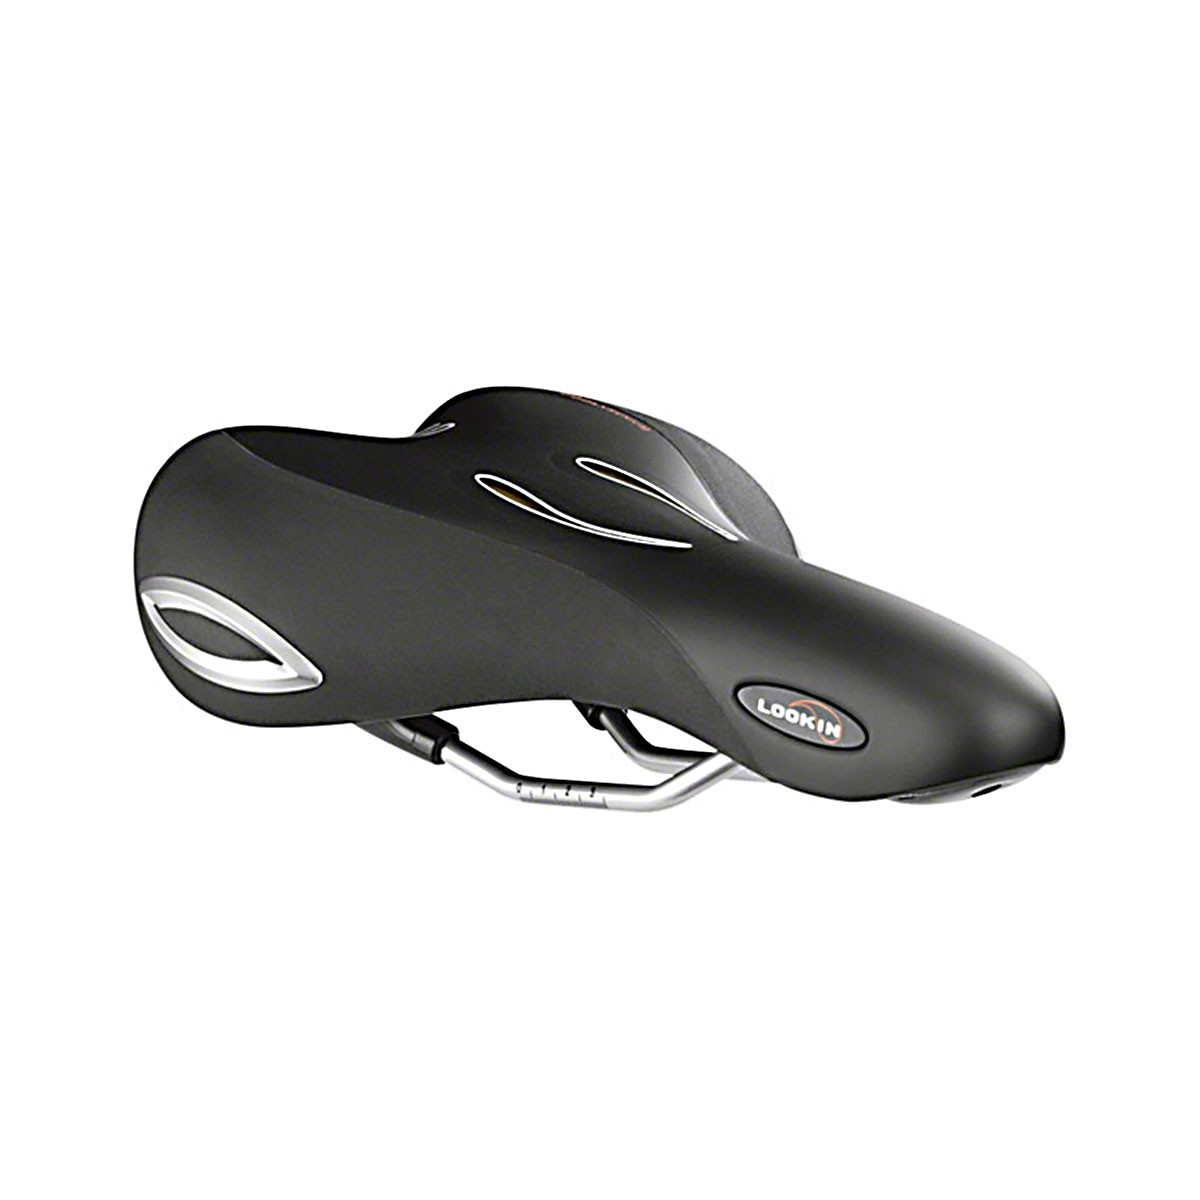 Selle Royal Sattel LookIN Moderate Herren